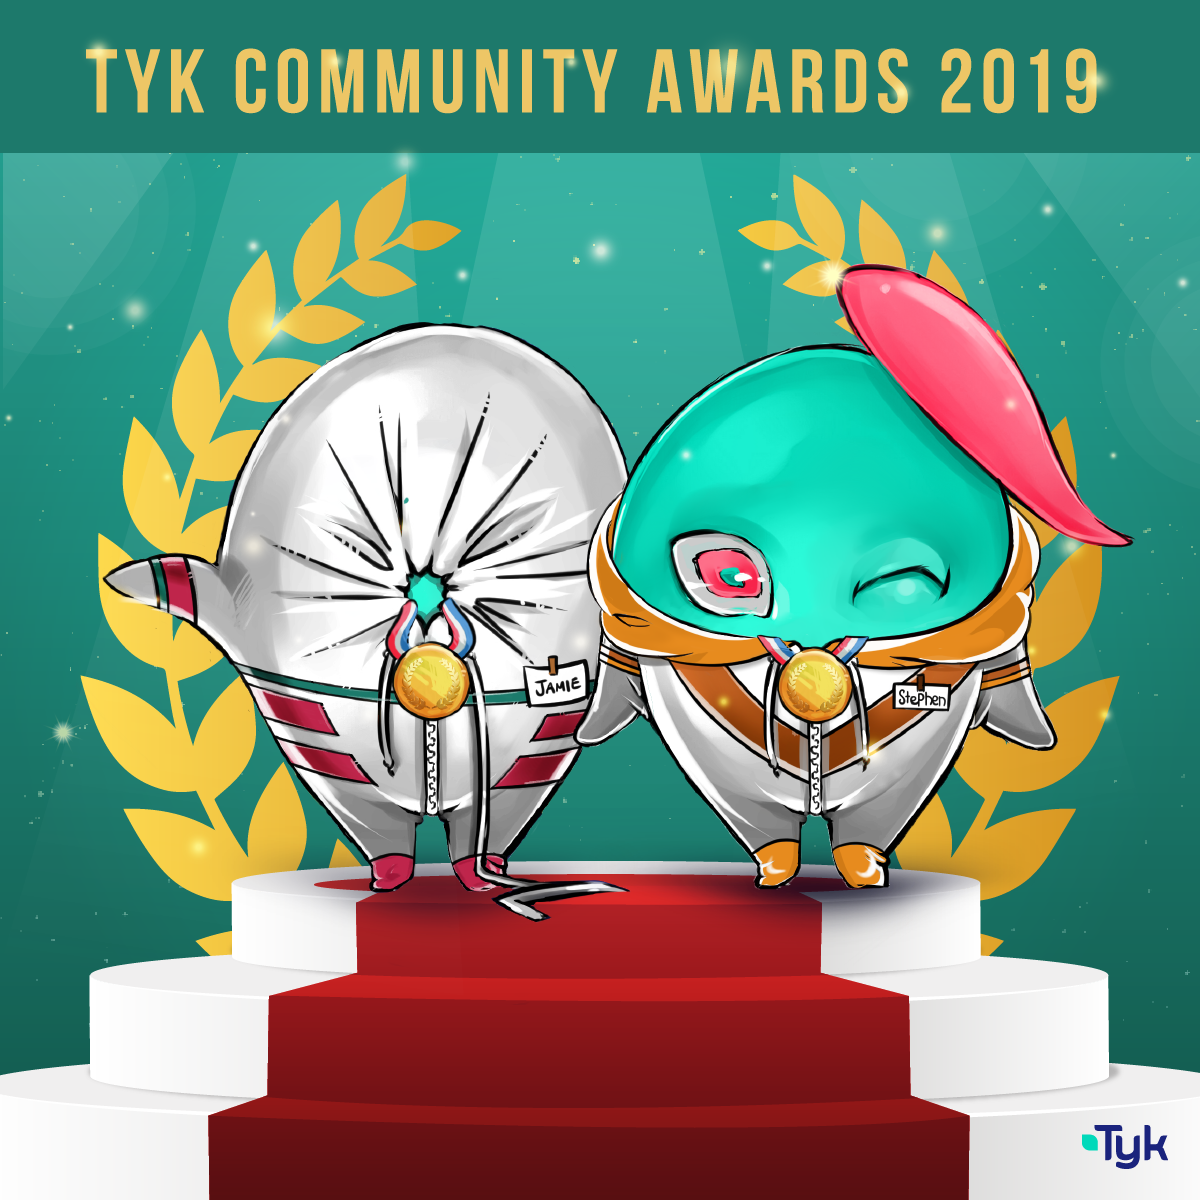 static/img/vendor/tyk-community-awards-mascots.png